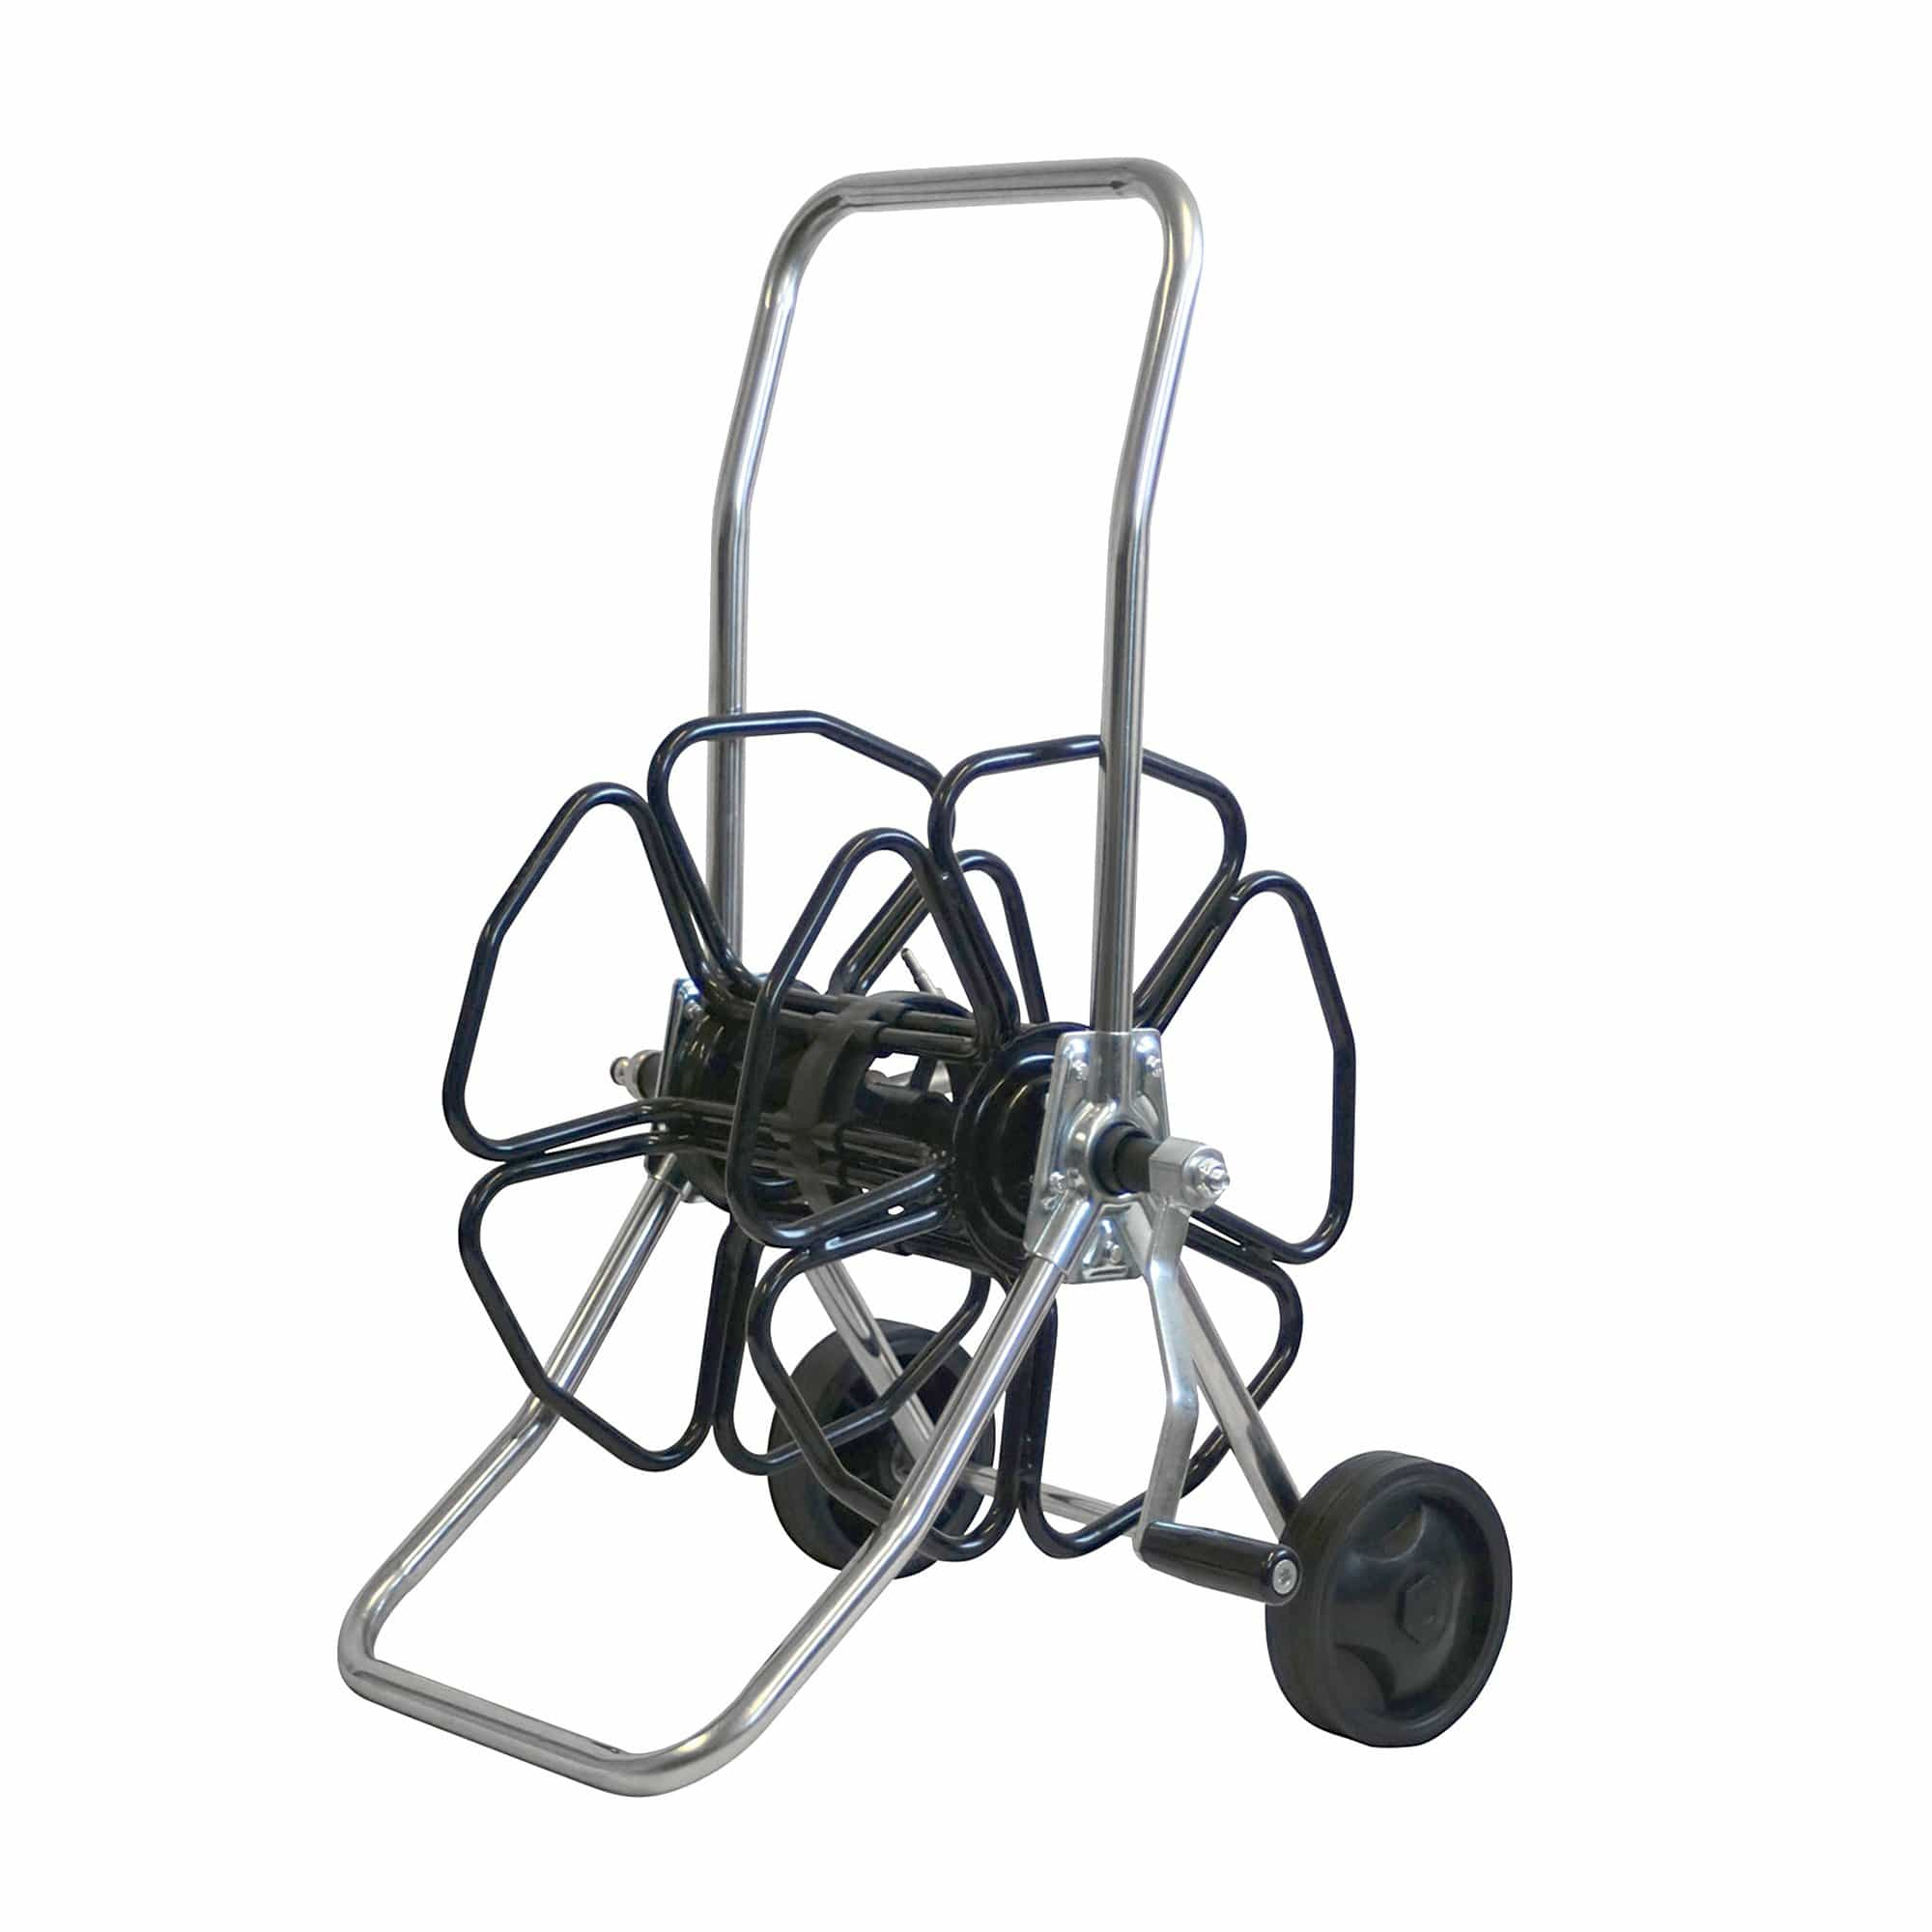 Stainless Steel INDUSTRIAL Hose Reel